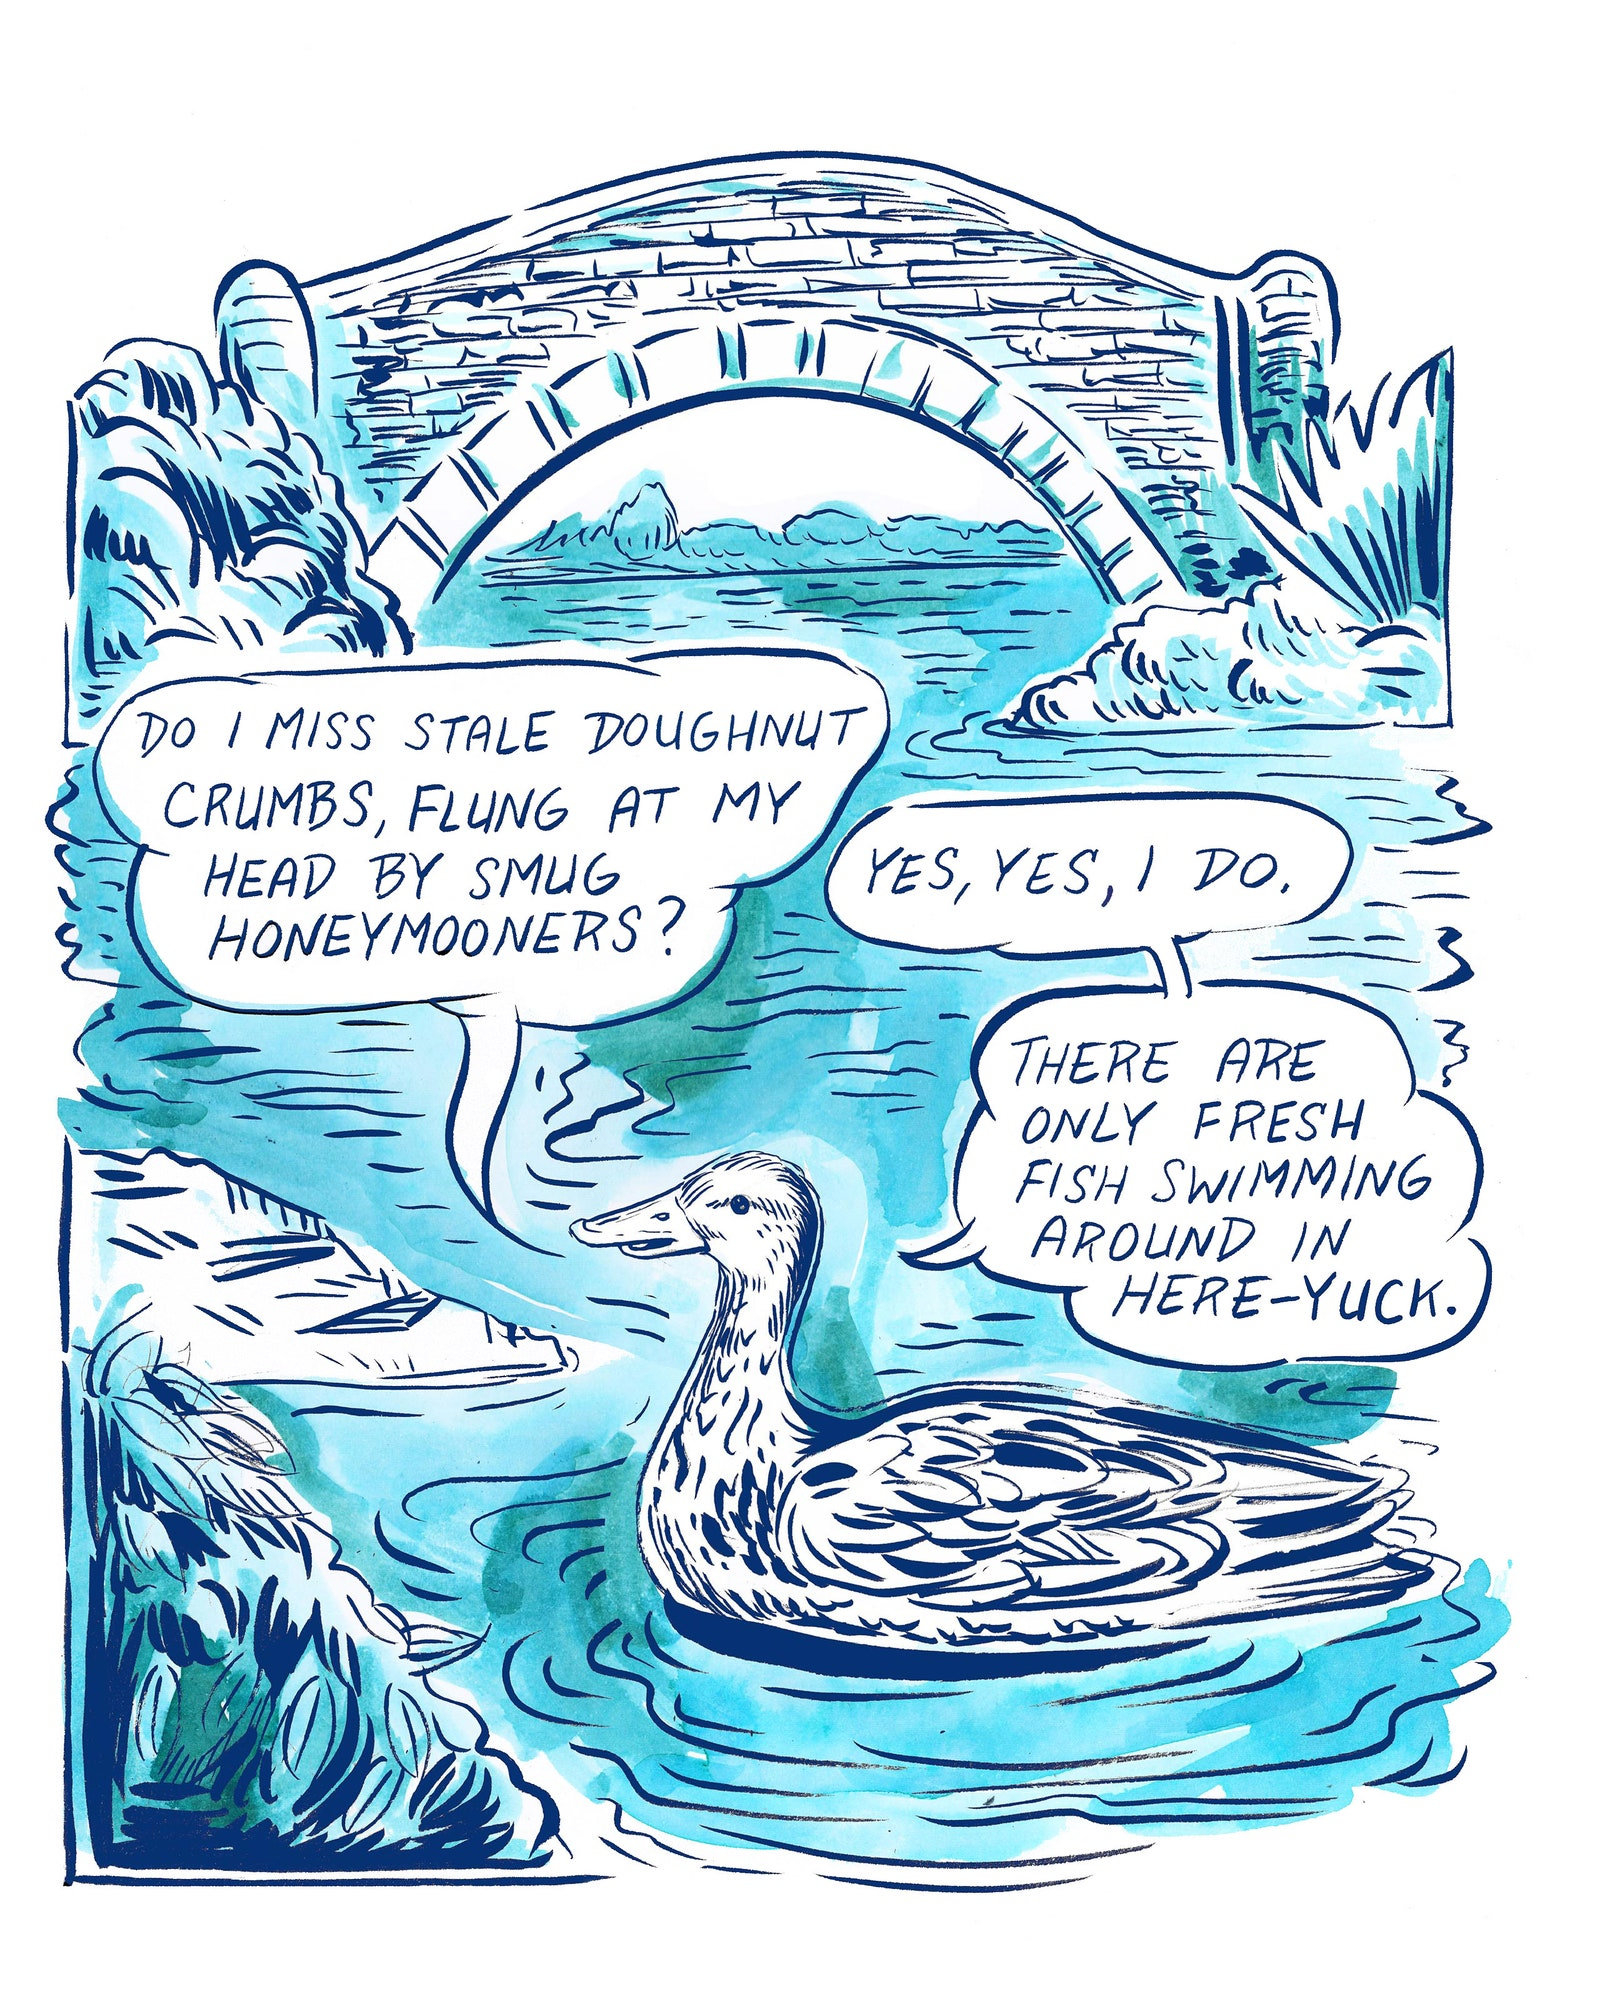 How Birds are Adjusting To Our New Reality - New Yorker - June 5 2020 - Illustration by Ali Fitzgerald